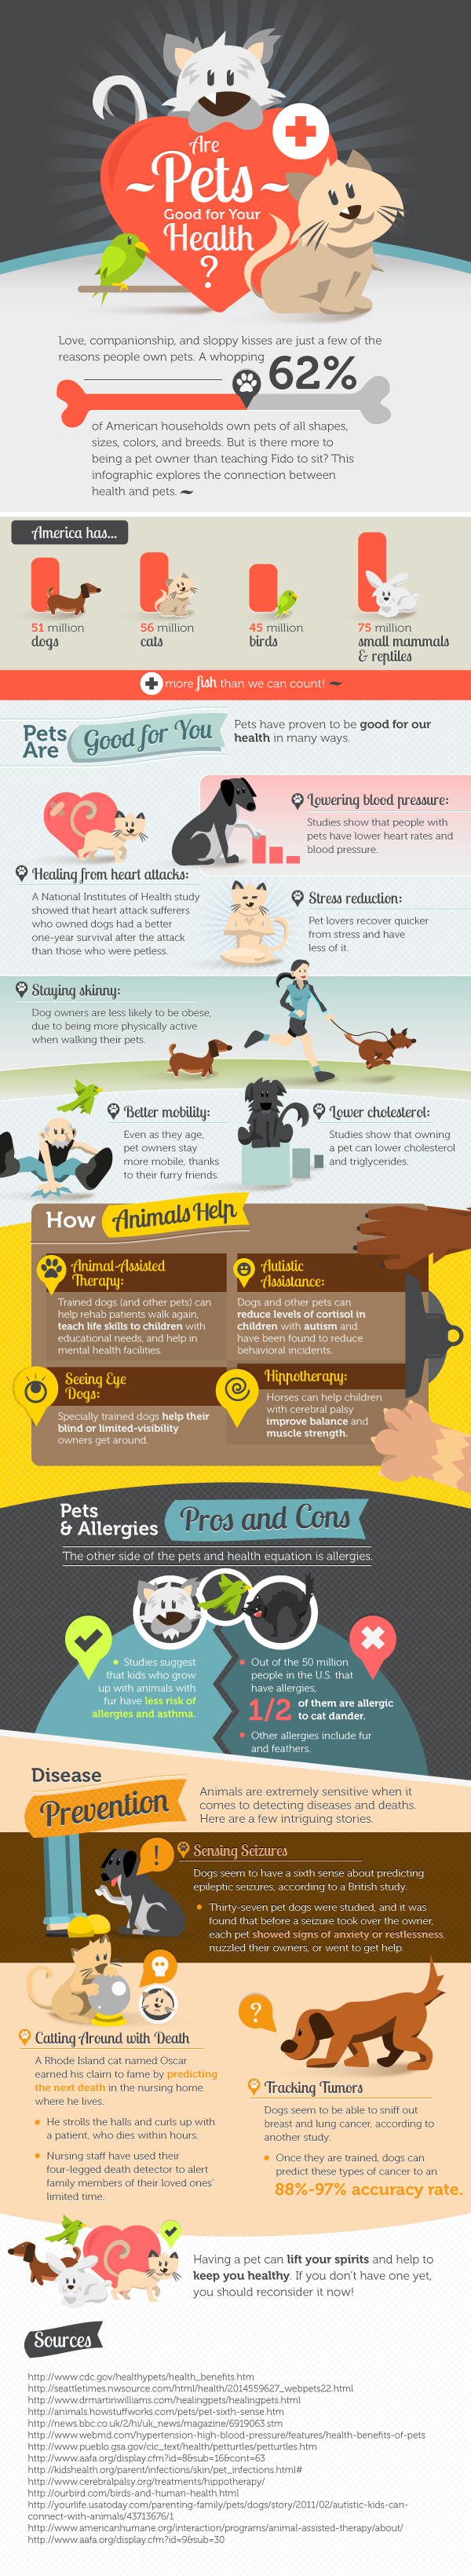 Is Pet At Home Good For Your health infographic